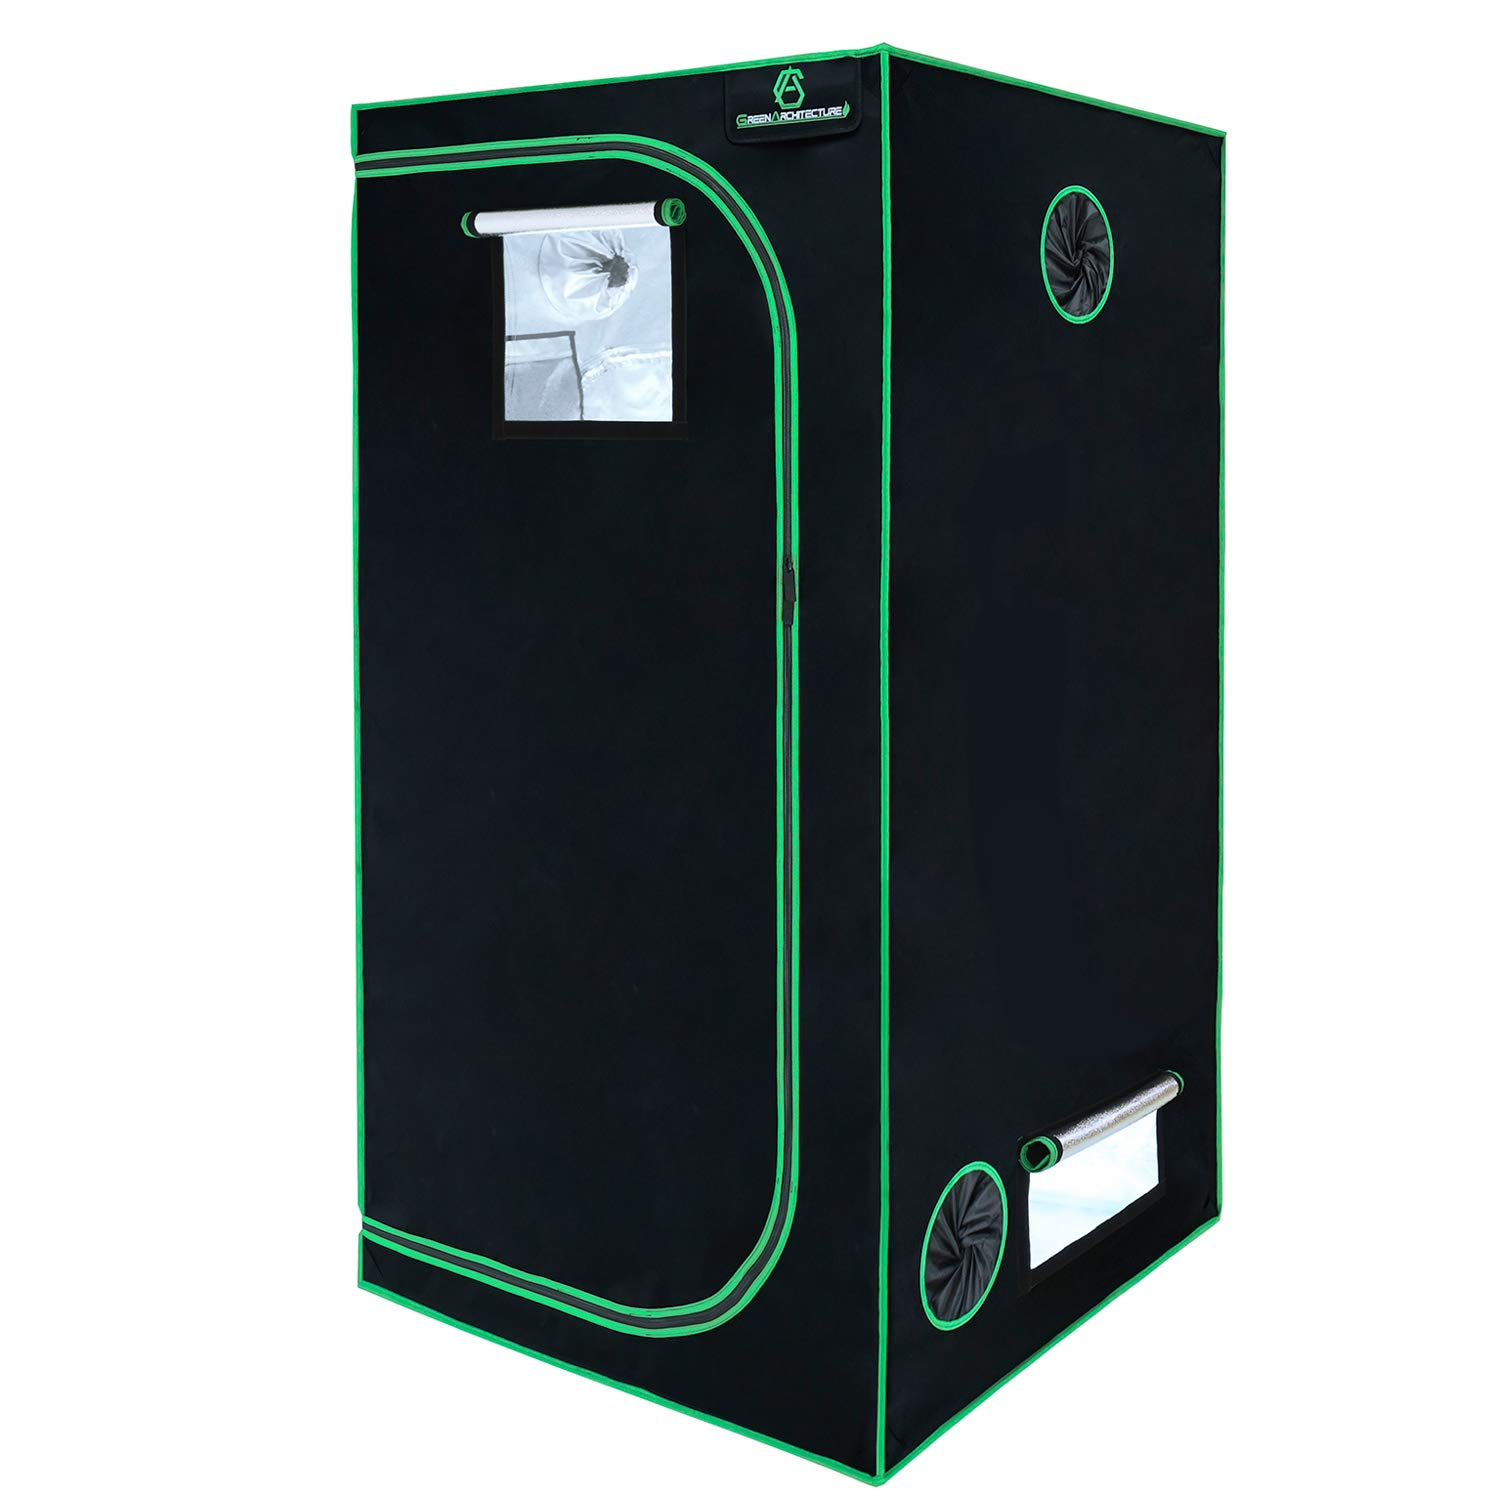 GA Grow Tent 24x24x48 Reflective Mylar Hydroponic Grow Tent with Observation Window and Waterproof Floor Tray for Indoor Plant Growing.2×2 for 1-2 Plants